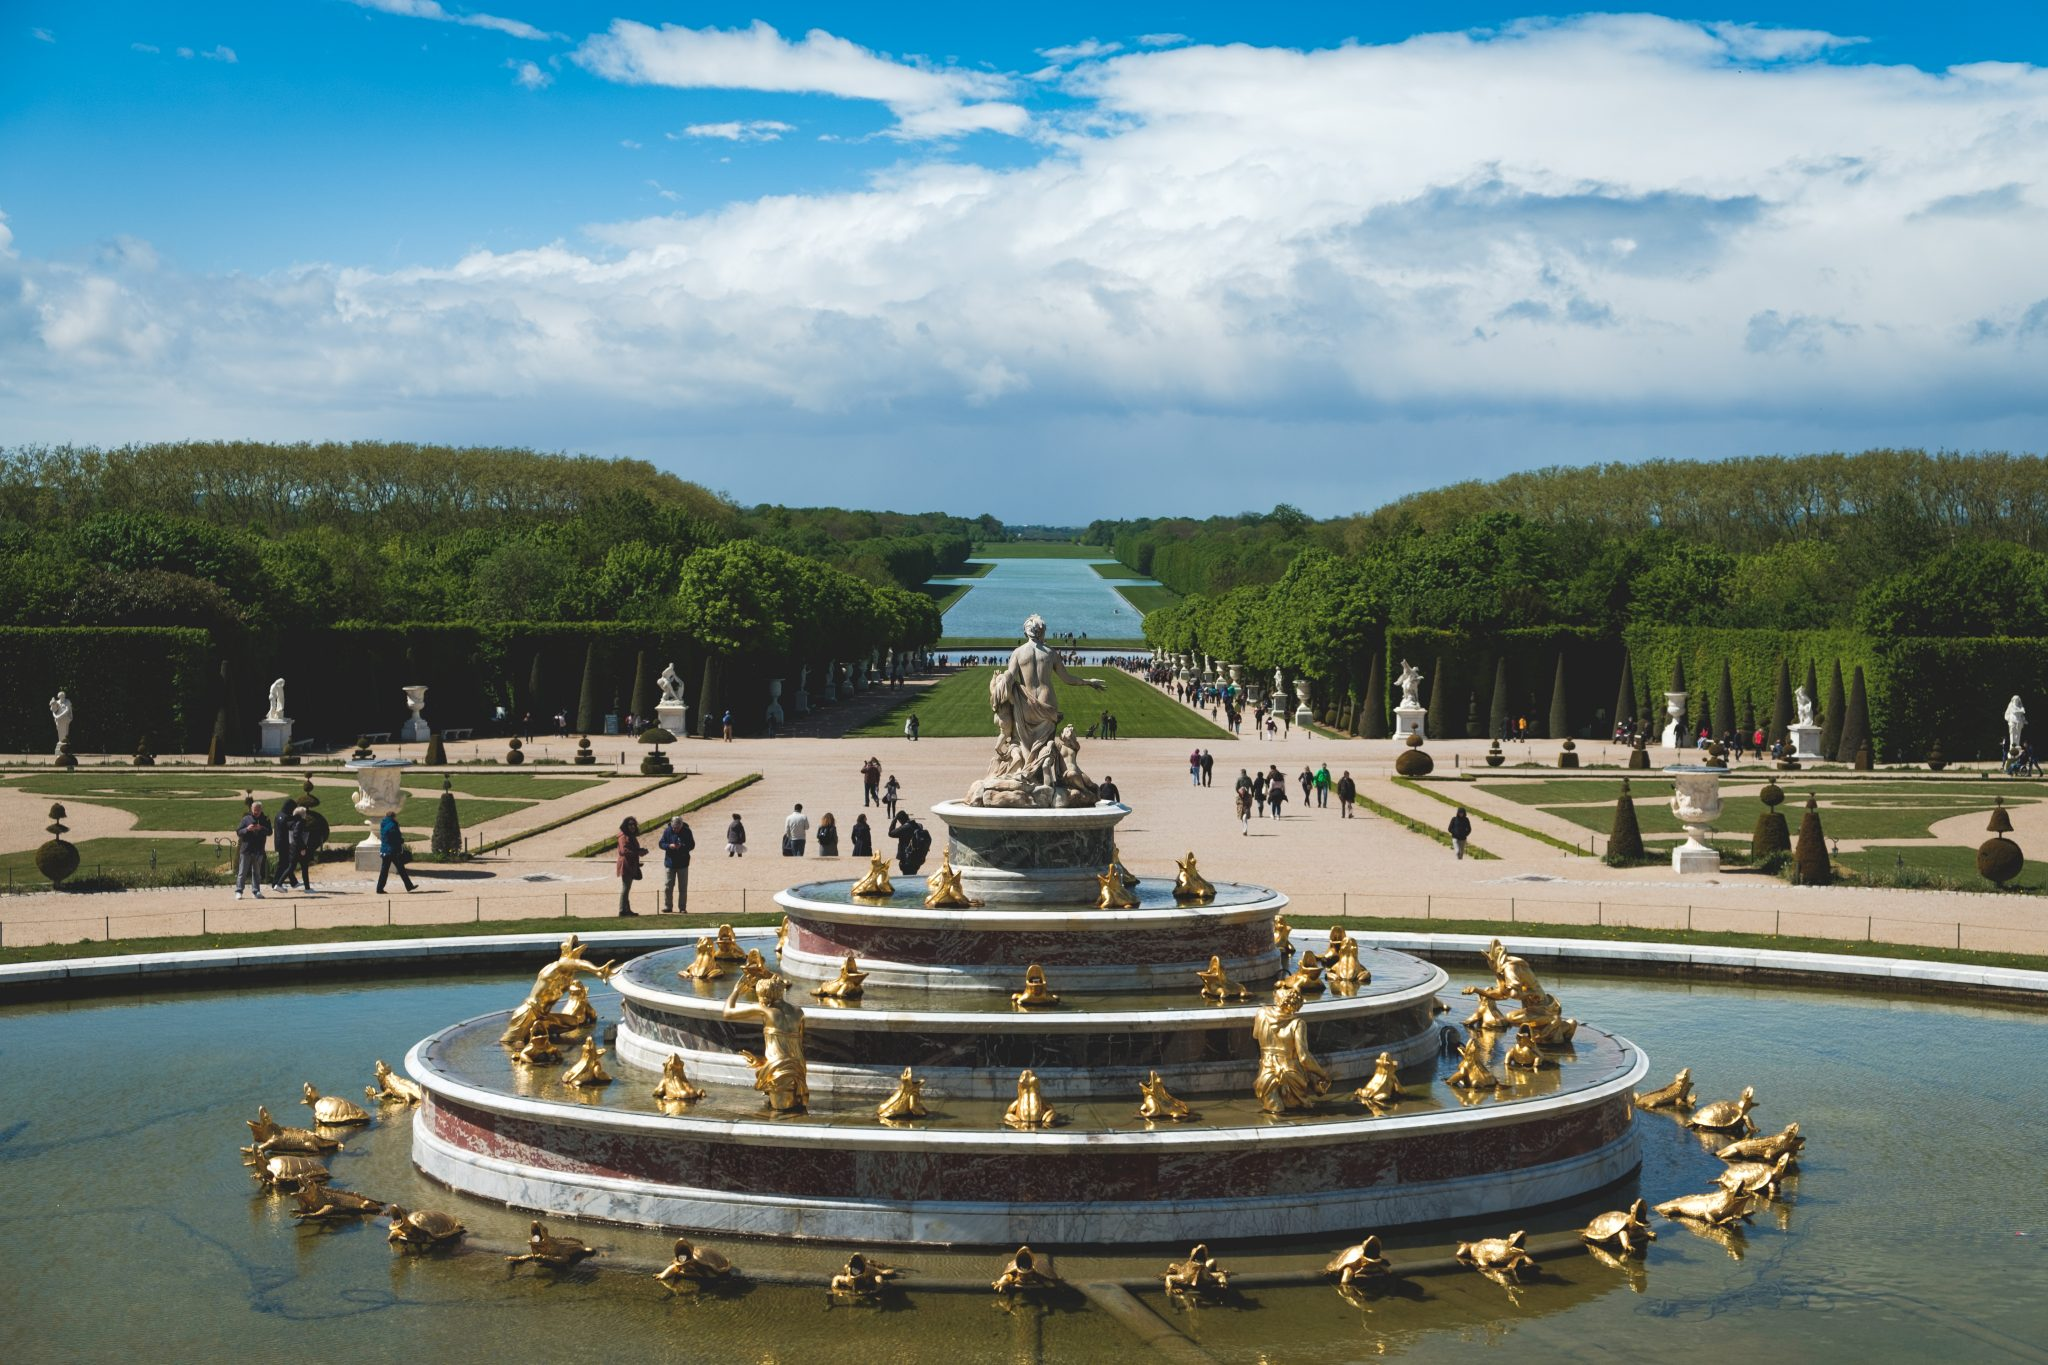 Fountain in the garden of the chateau de versailles photo by Jo Kassis